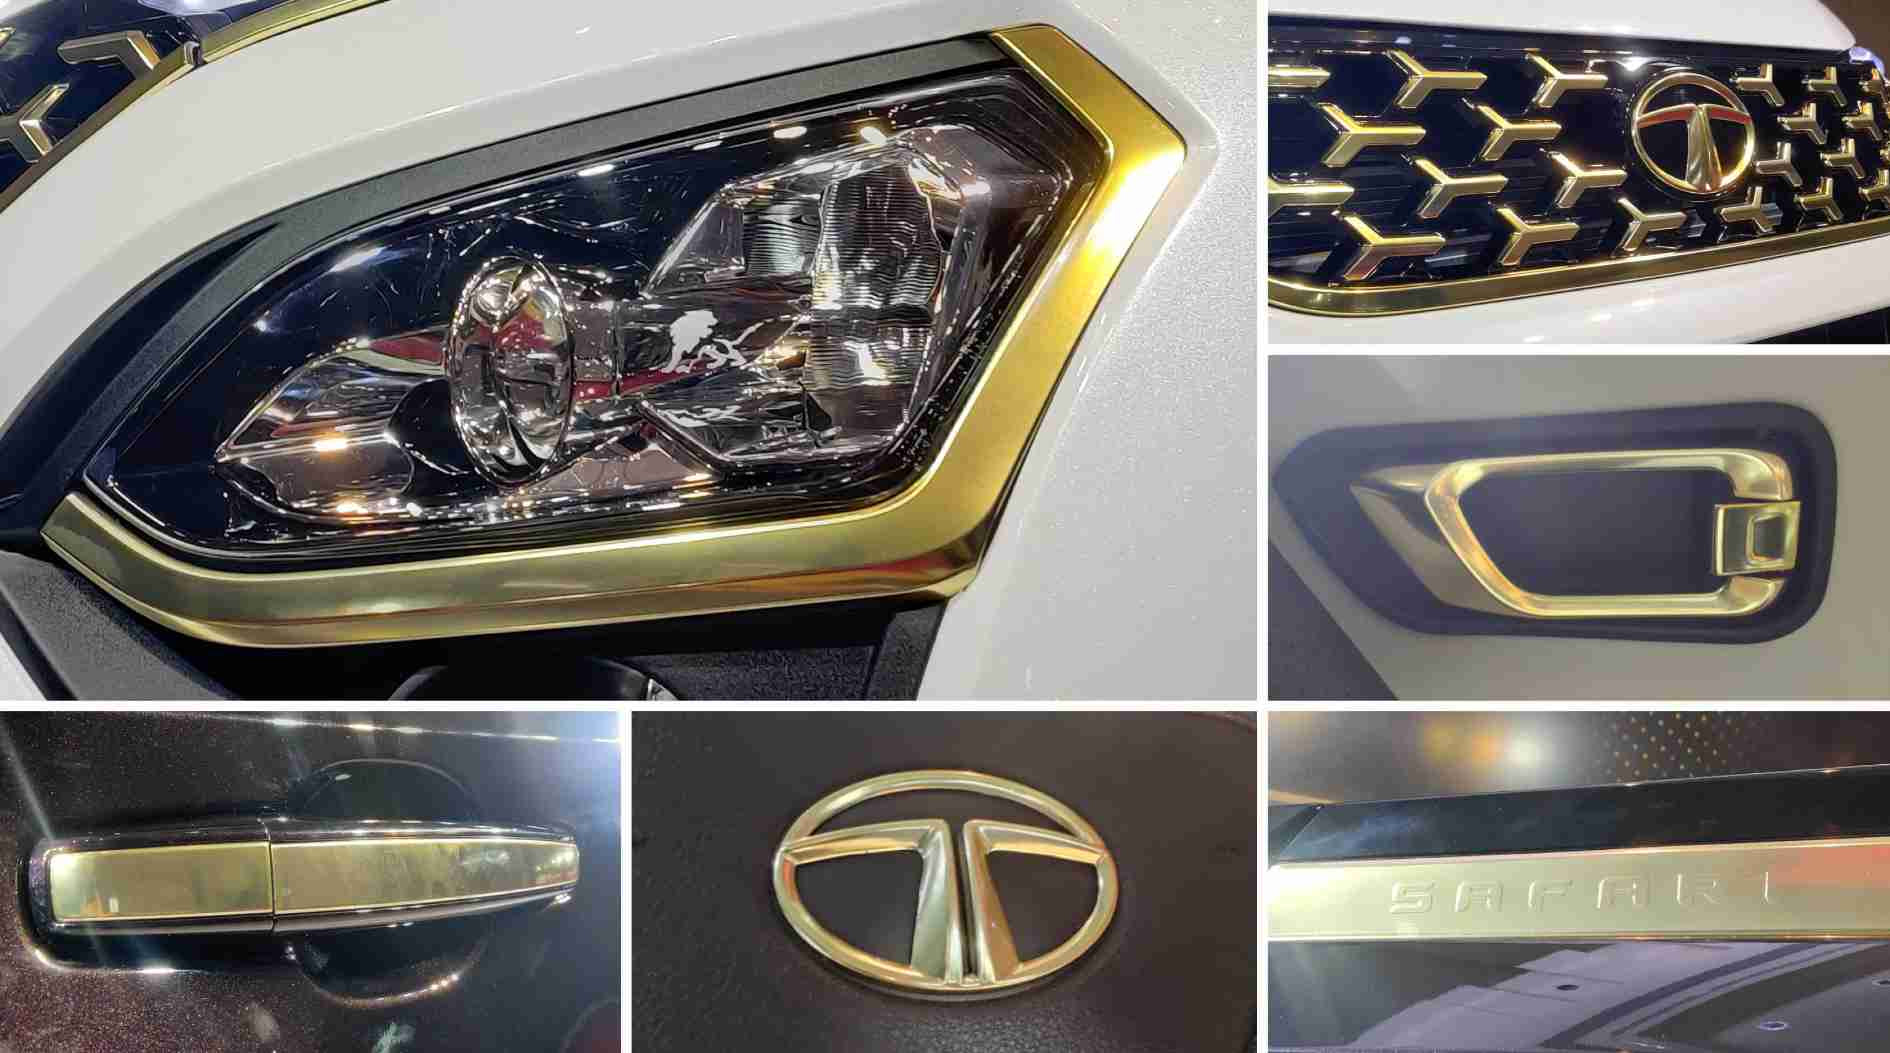 Most exterior and interior elements sport a gold finish - and it might be a bit too much for some tastes. Image: Tech2/Amaan Ahmed